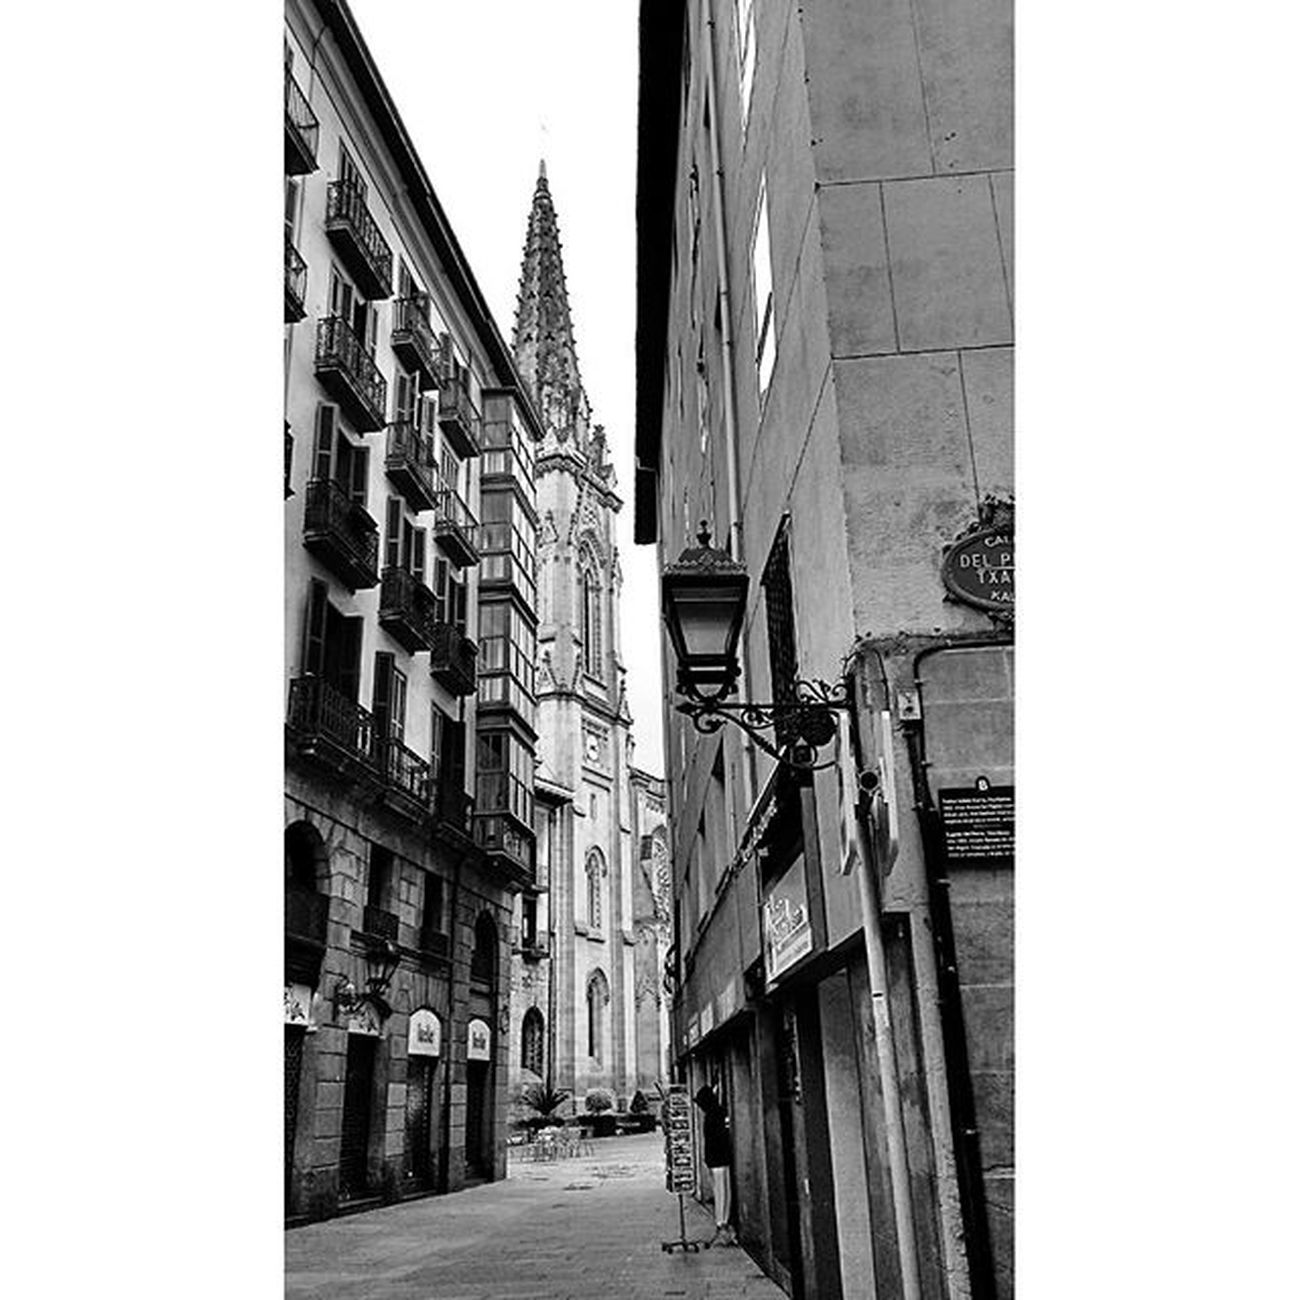 Casco Viejo de Bilbao Blackandwhite Bnwsplash_paisvasco Bilbao Ilovebilbao Bilbaoclick Euskadi Euskaditurismo Euskogram Euskorincones Euskadigrafias Pocket_bnw Verybilbao Bilbosoul Total_euskadi Loves_euskadi Turismo_euskadi Instantes_fotograficos Landscape View Visiteuskadi Webstagram Tagsforlikes Photooftheday Picoftheday All_shots like4like instagood bilbosoulchallenge estaes_paisvasco bnw_captures